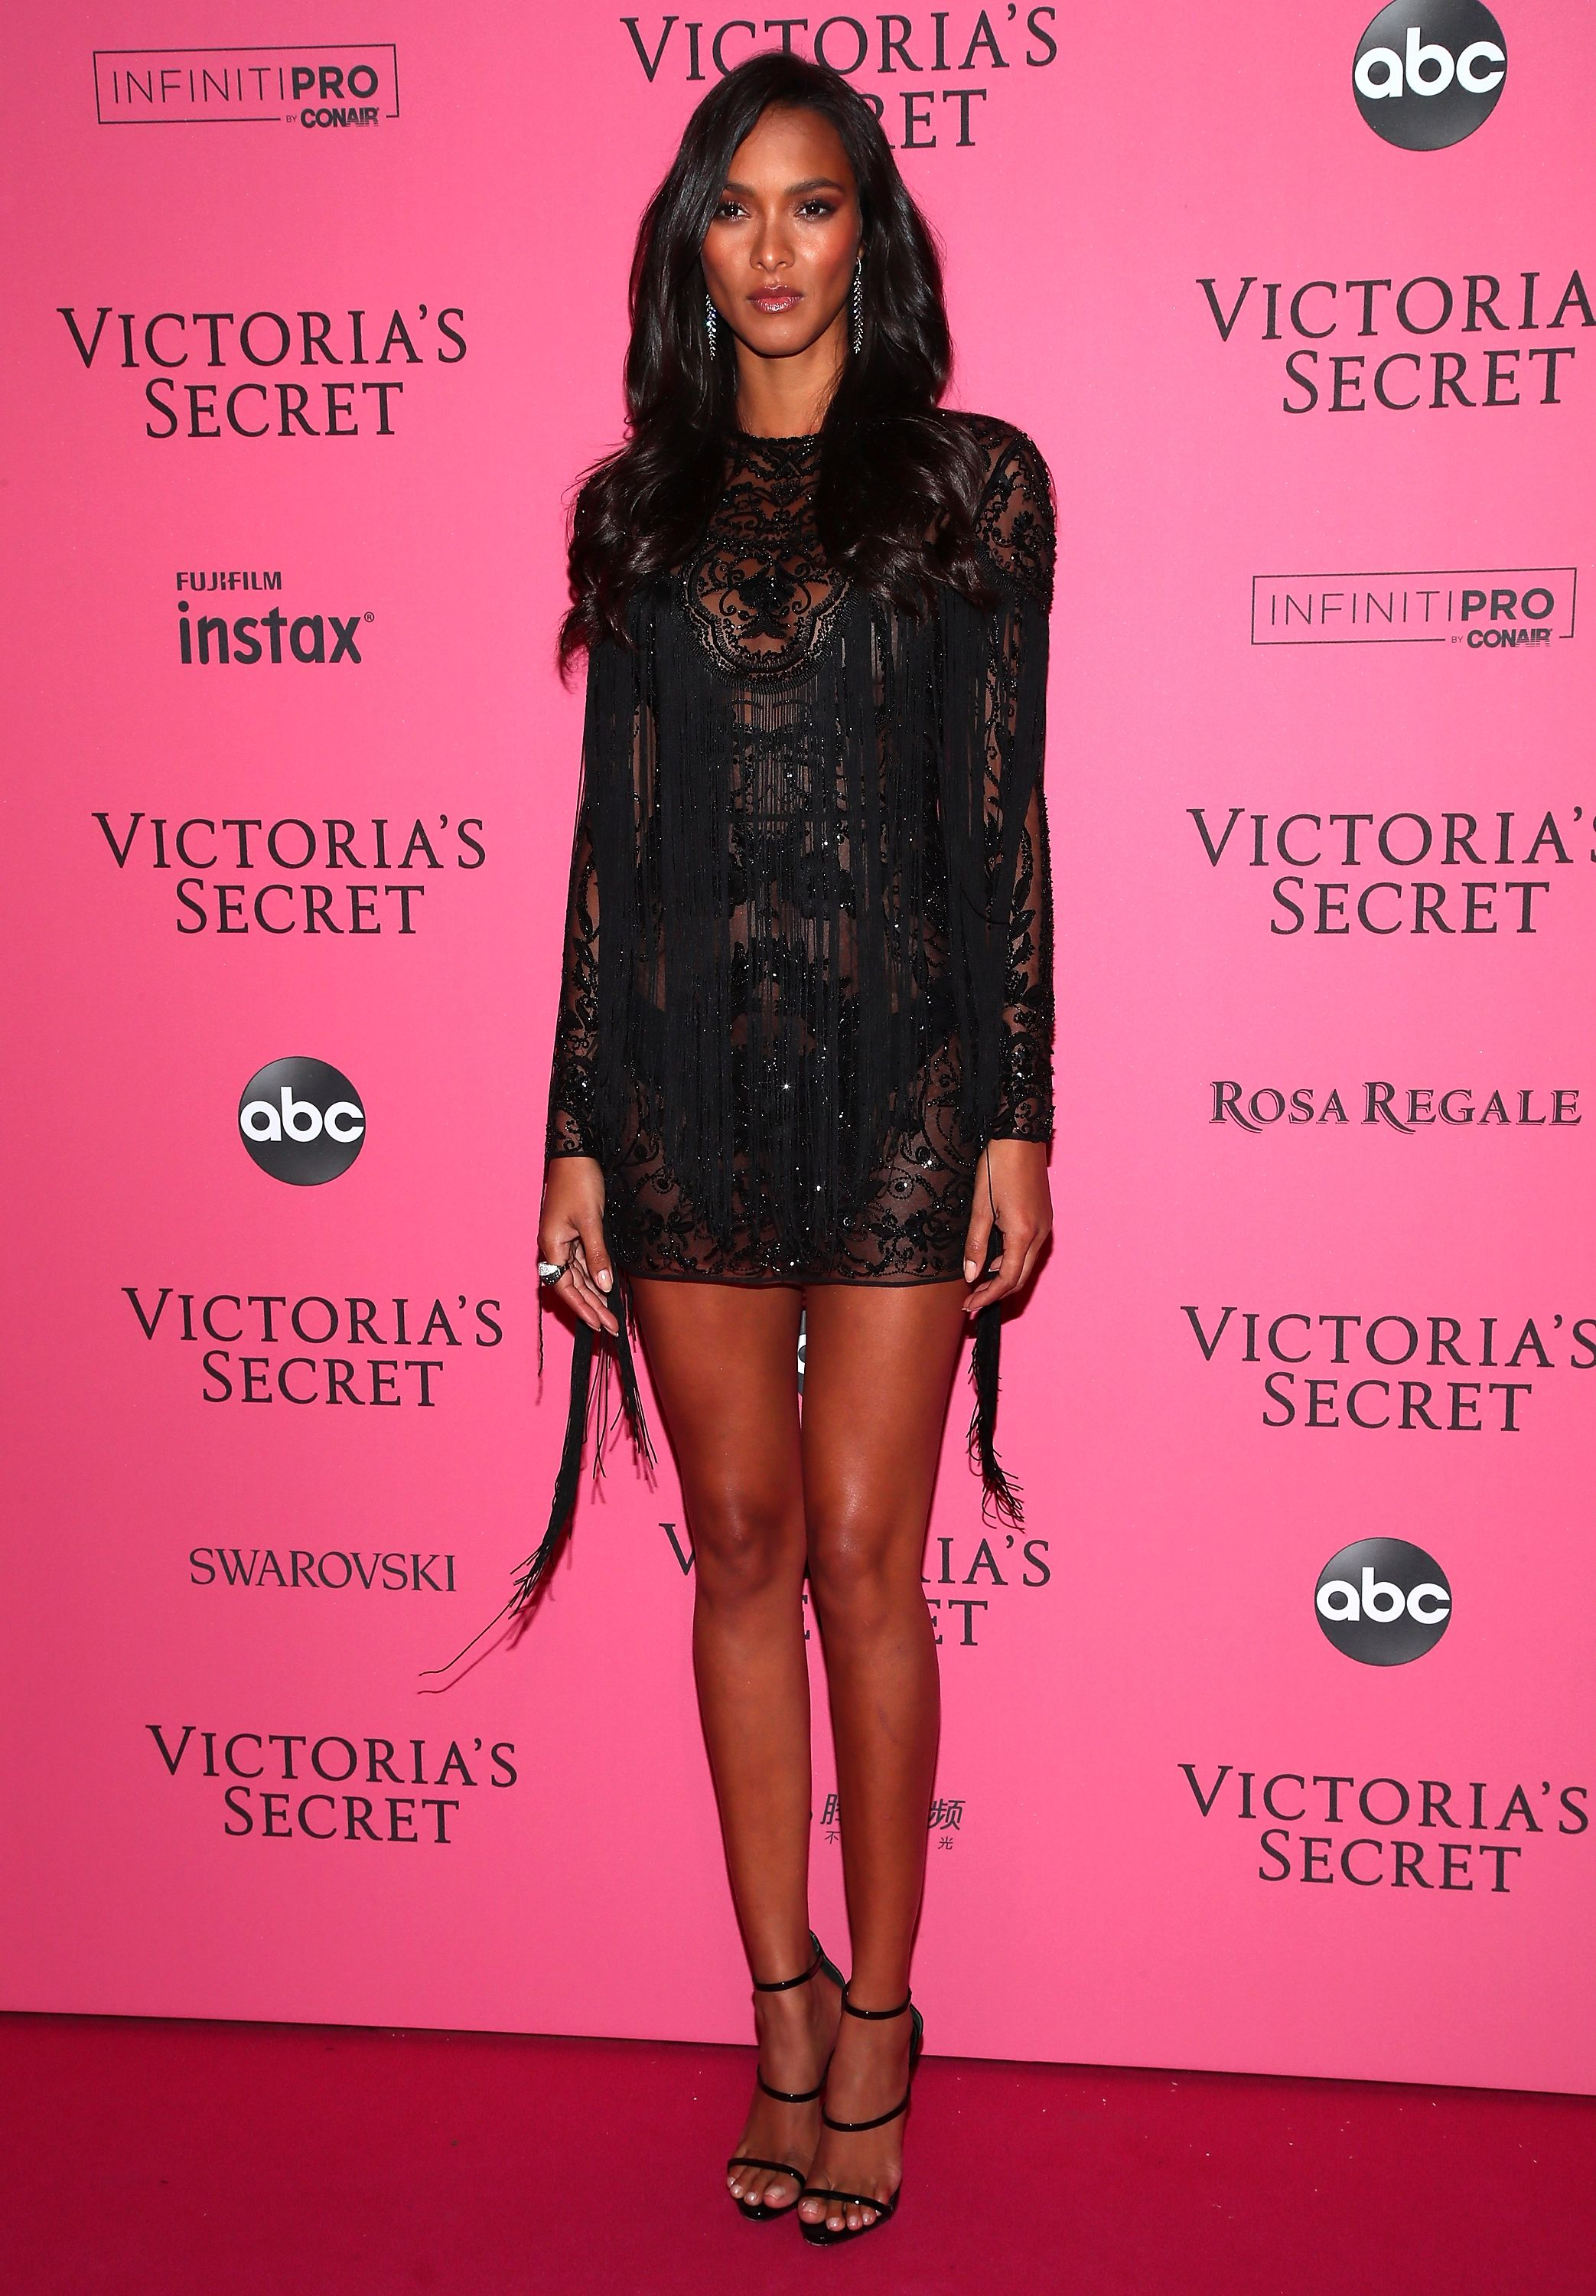 08b2cf21cb9 Victoria s Secret Fashion Show 2018 After Party Looks - What the Victoria s  Secret Angels Wore to the After Party